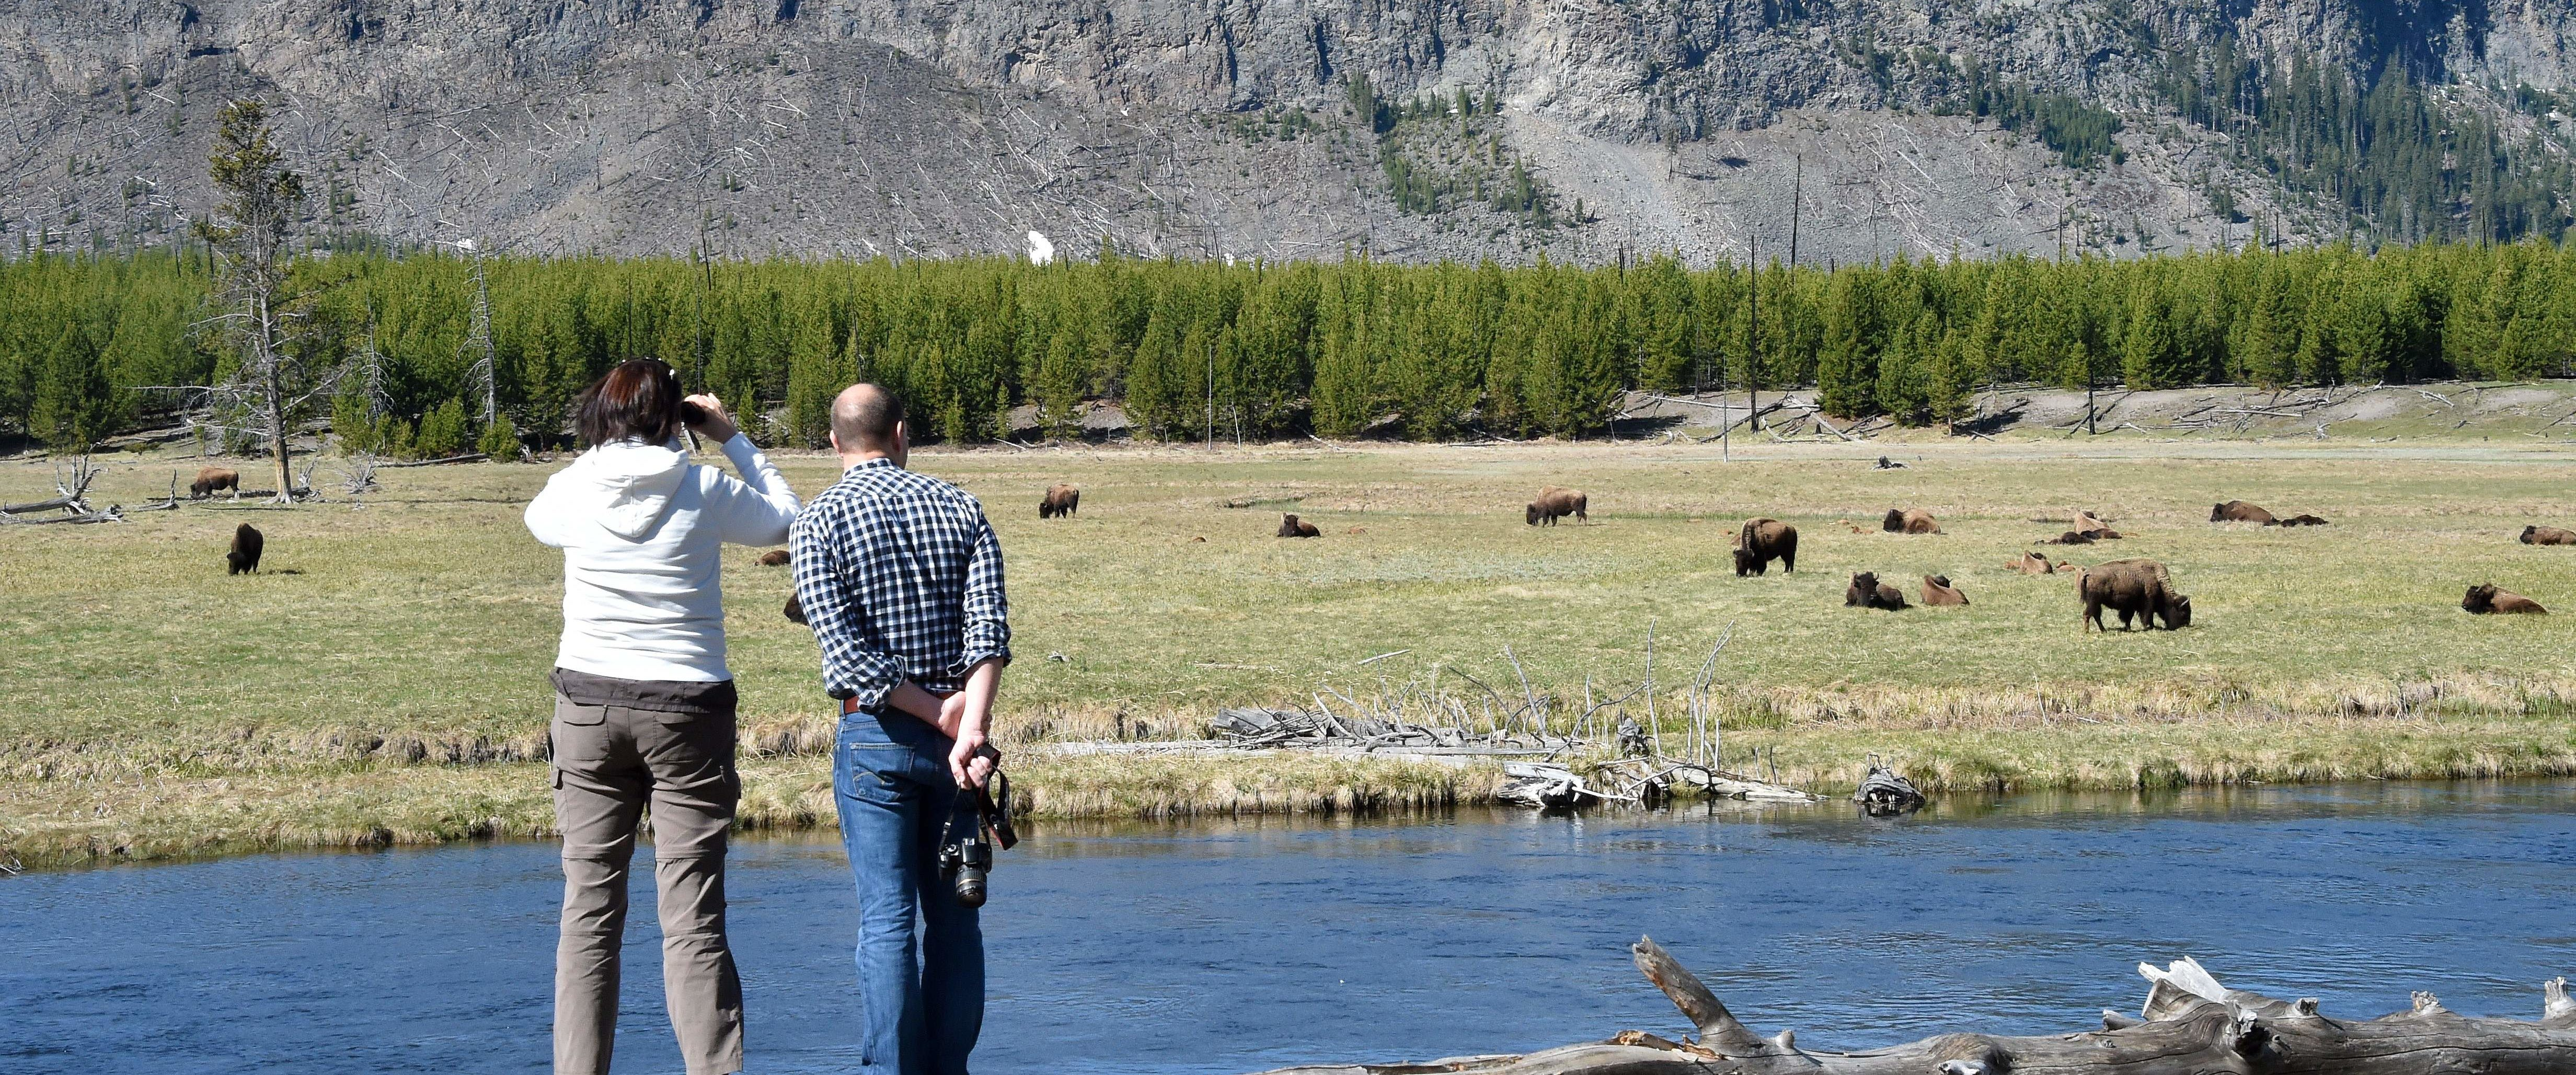 Tourists observe a herd of bisons at Yellowstone National Park on May 12, 2016. / AFP / MLADEN ANTONOV (Photo credit should read MLADEN ANTONOV/AFP/Getty Images)